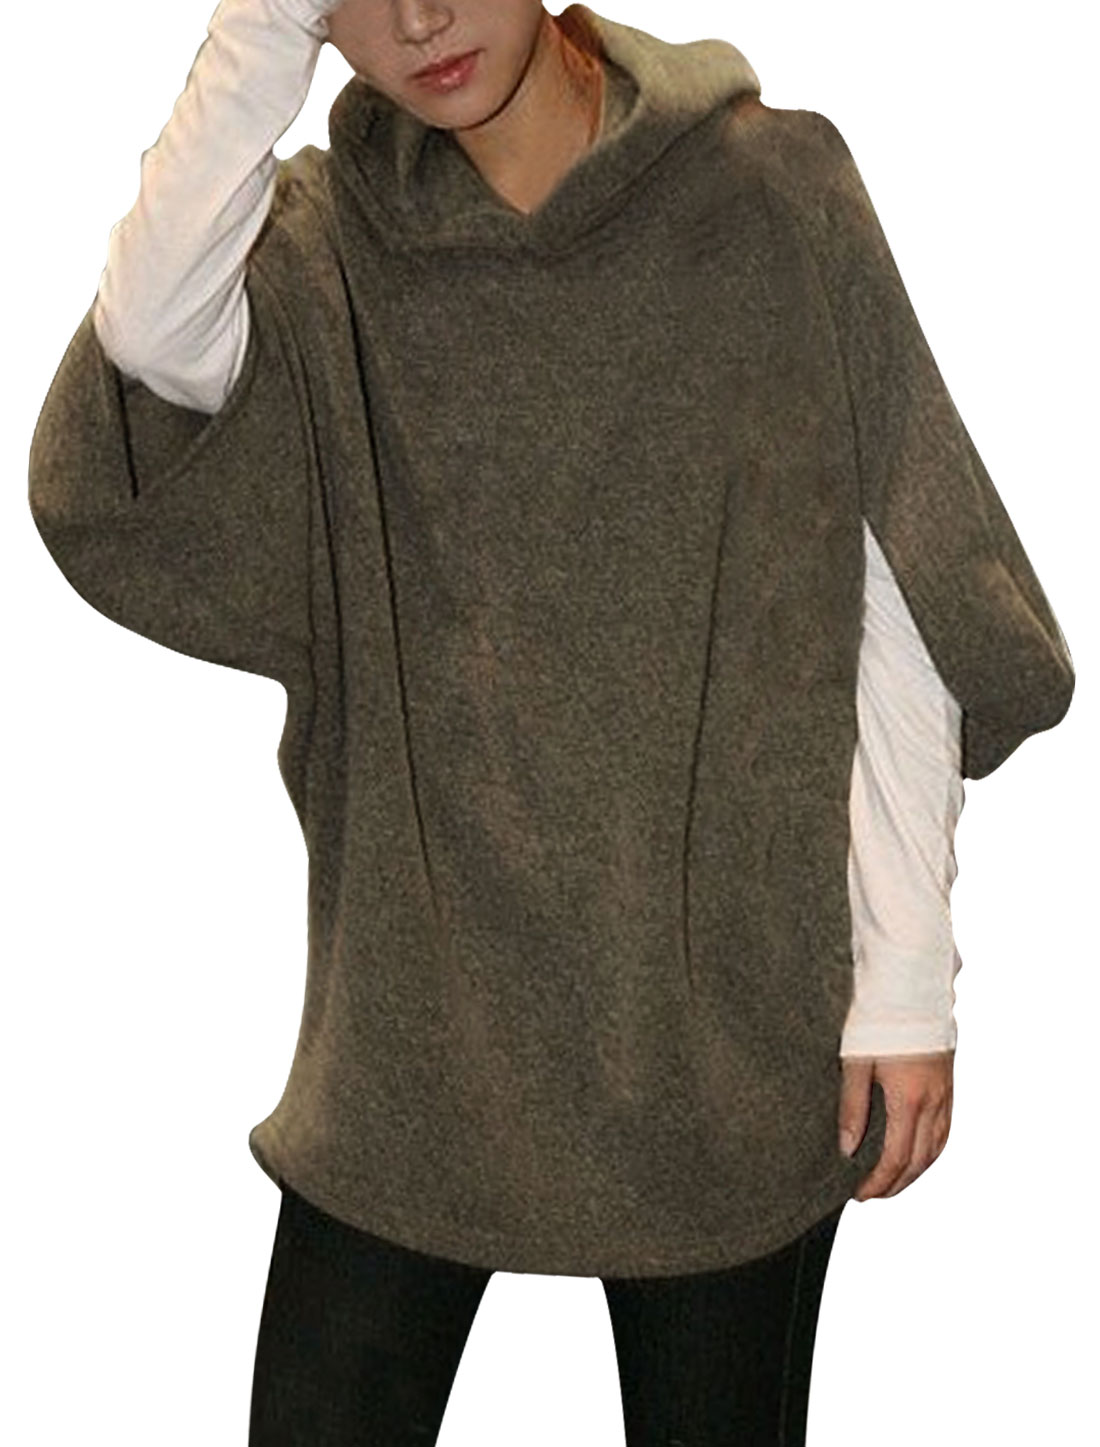 Lady Coffee Color Half Dolman Sleeve Pullover Design Loose Knitting Top M